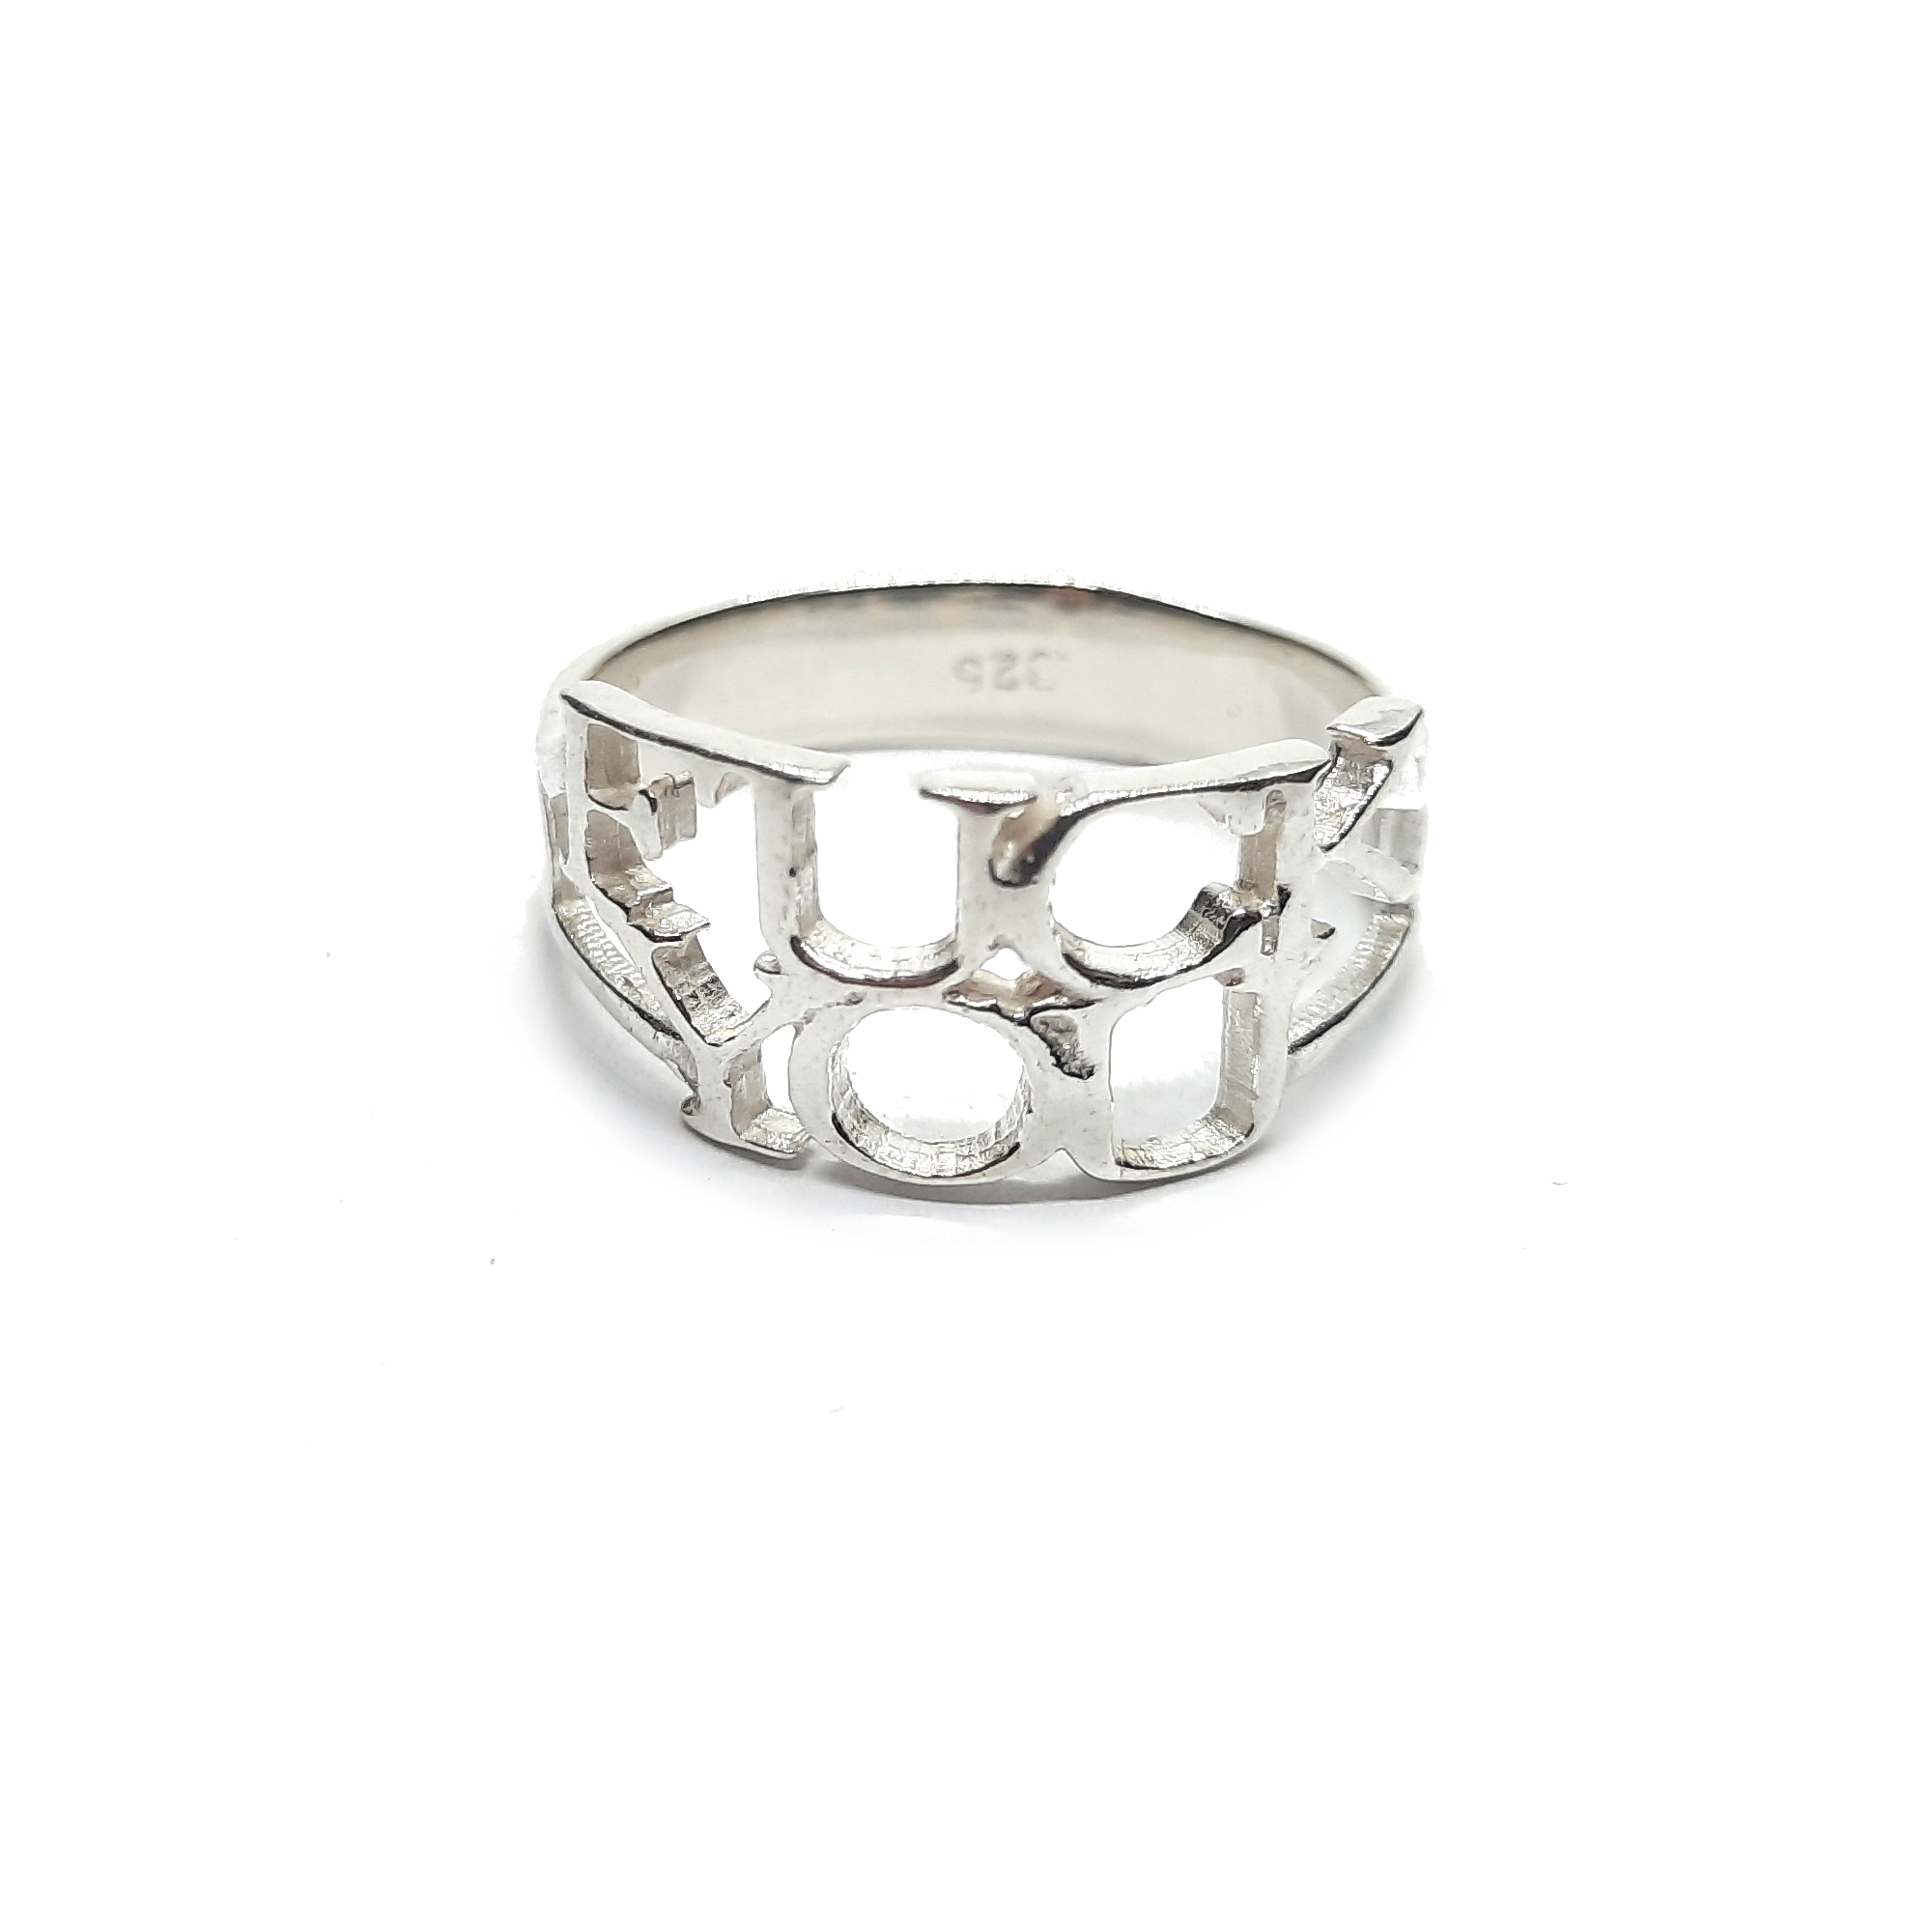 Silver ring - R002241